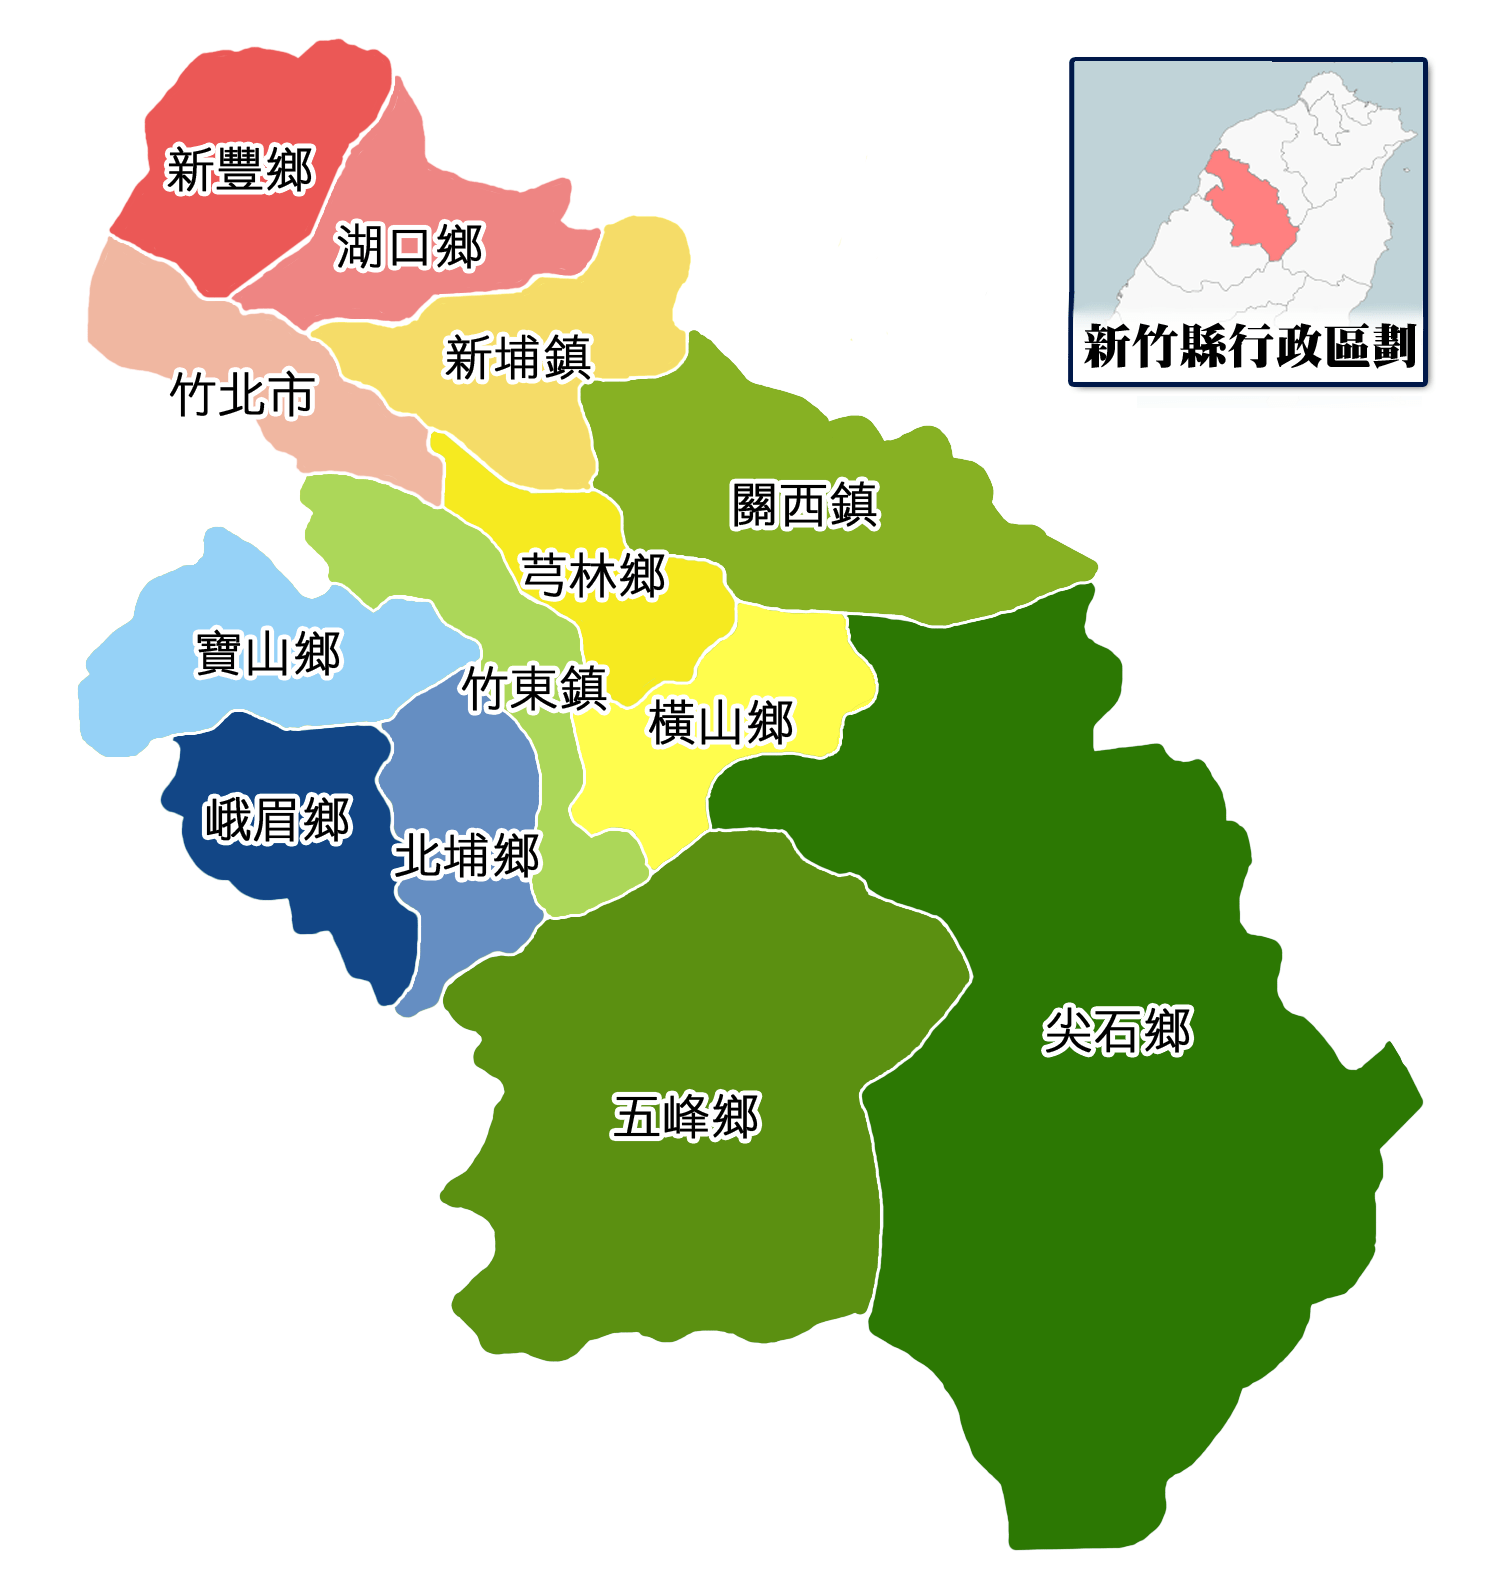 File:Hsinchu labelled map2.png - Wikimedia Commons